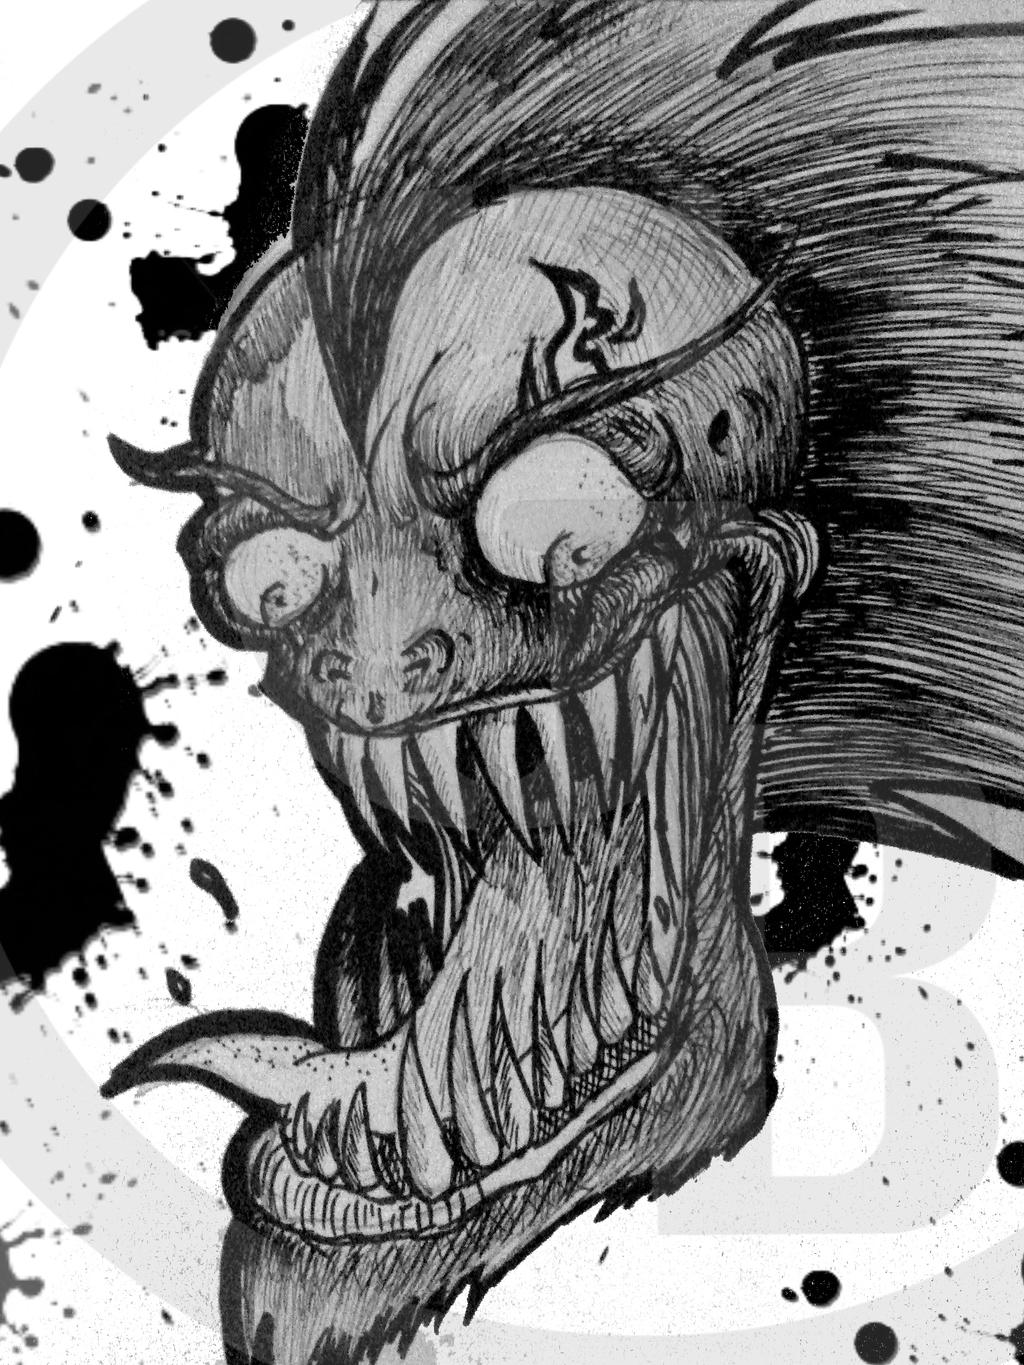 Evil Creature Head with ink blots by brandongroce123 on ...